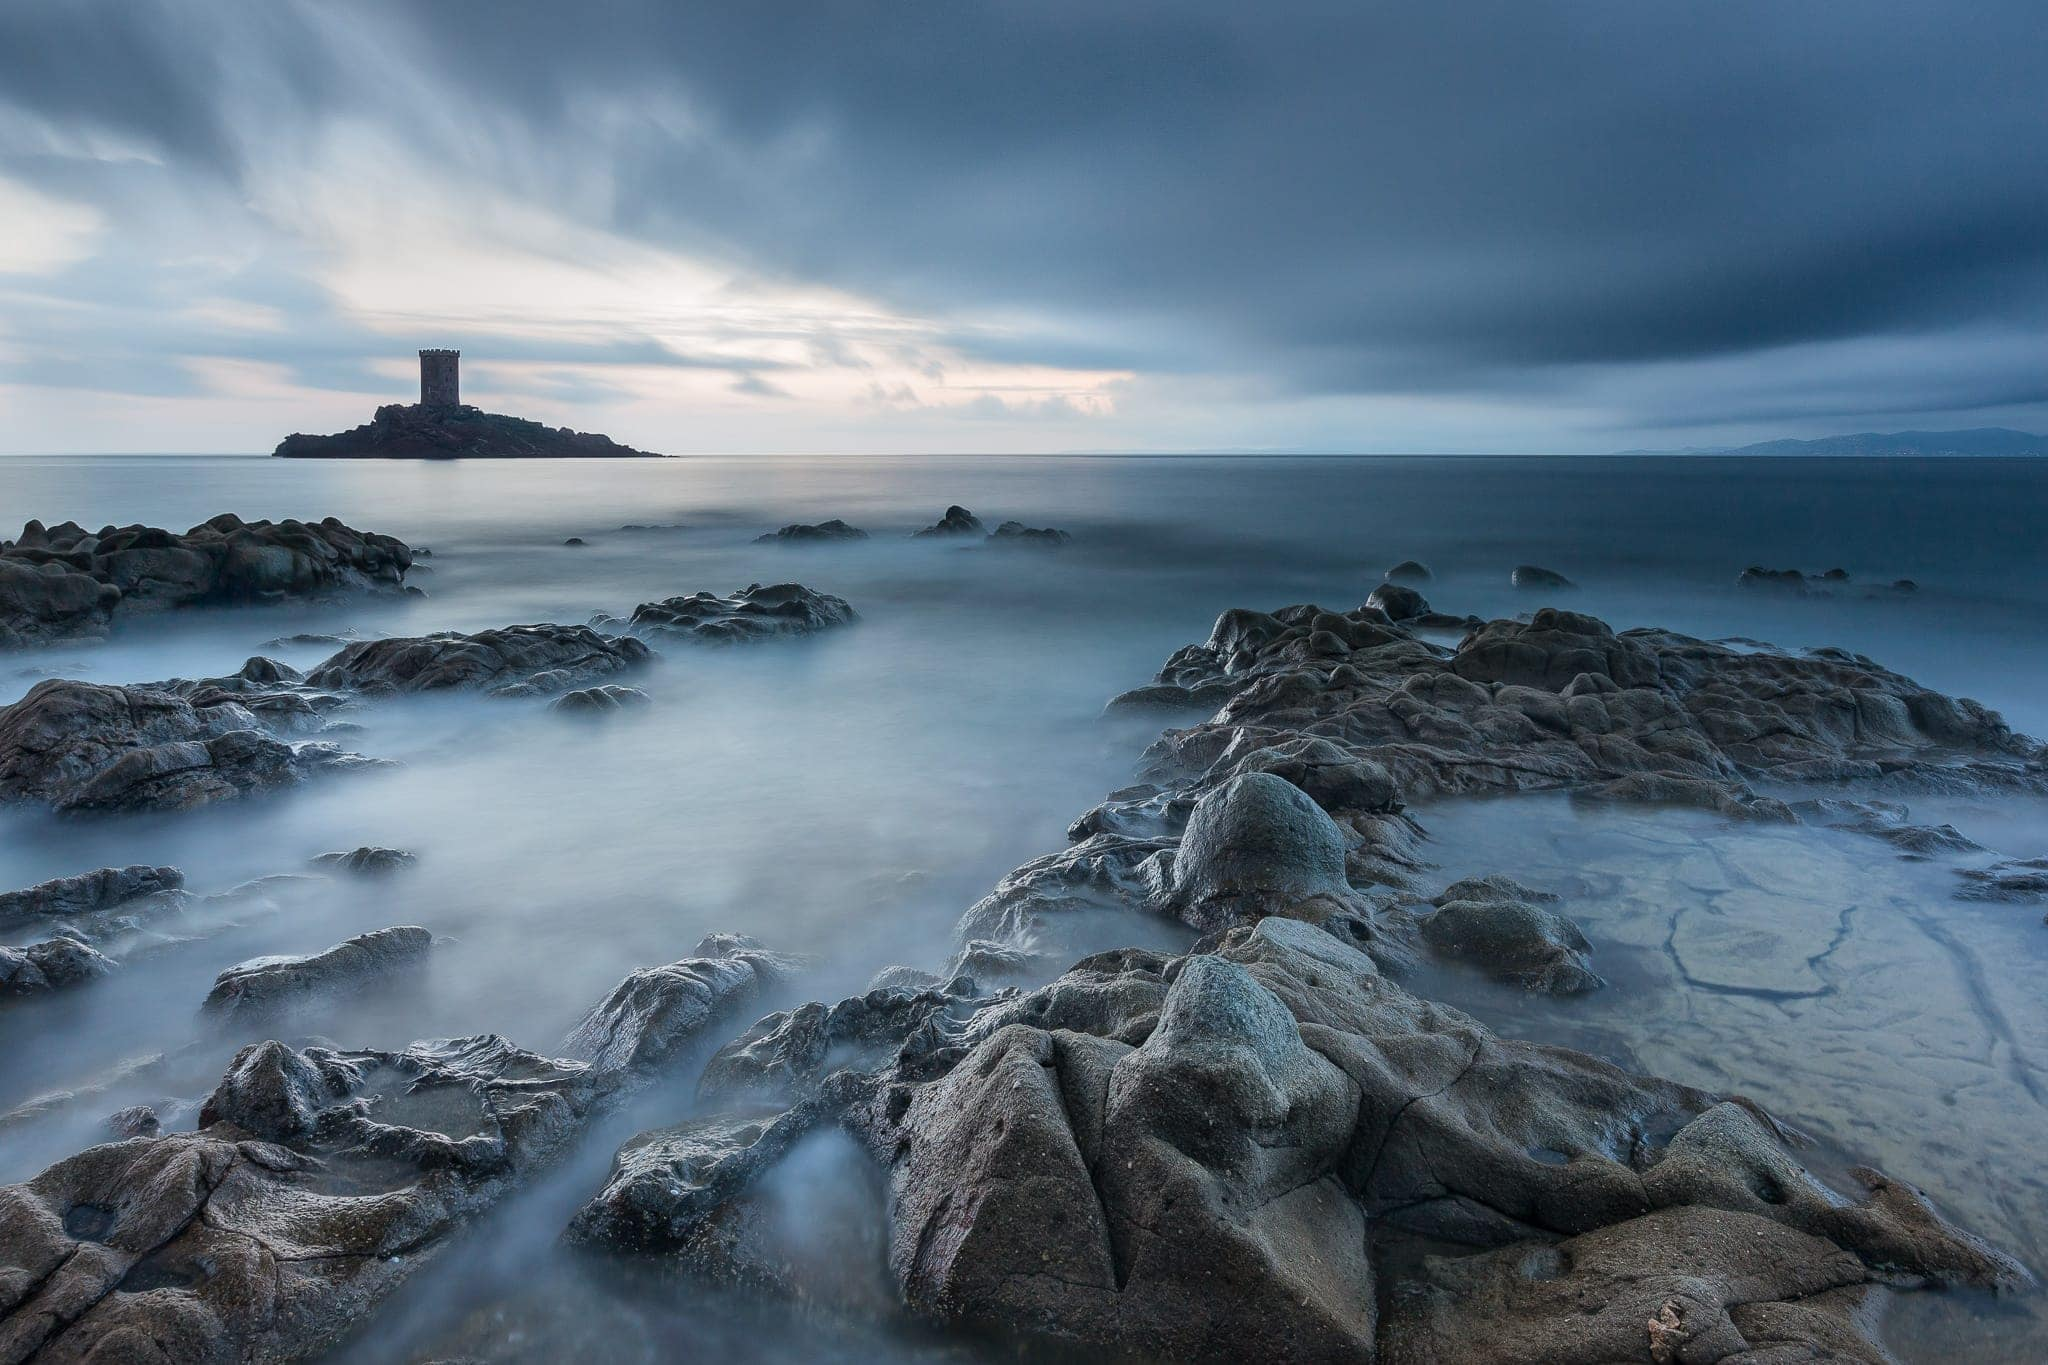 Francesco Gola Seascape Landscape Photography Long Exposure Dramont Storm France Cote Azur